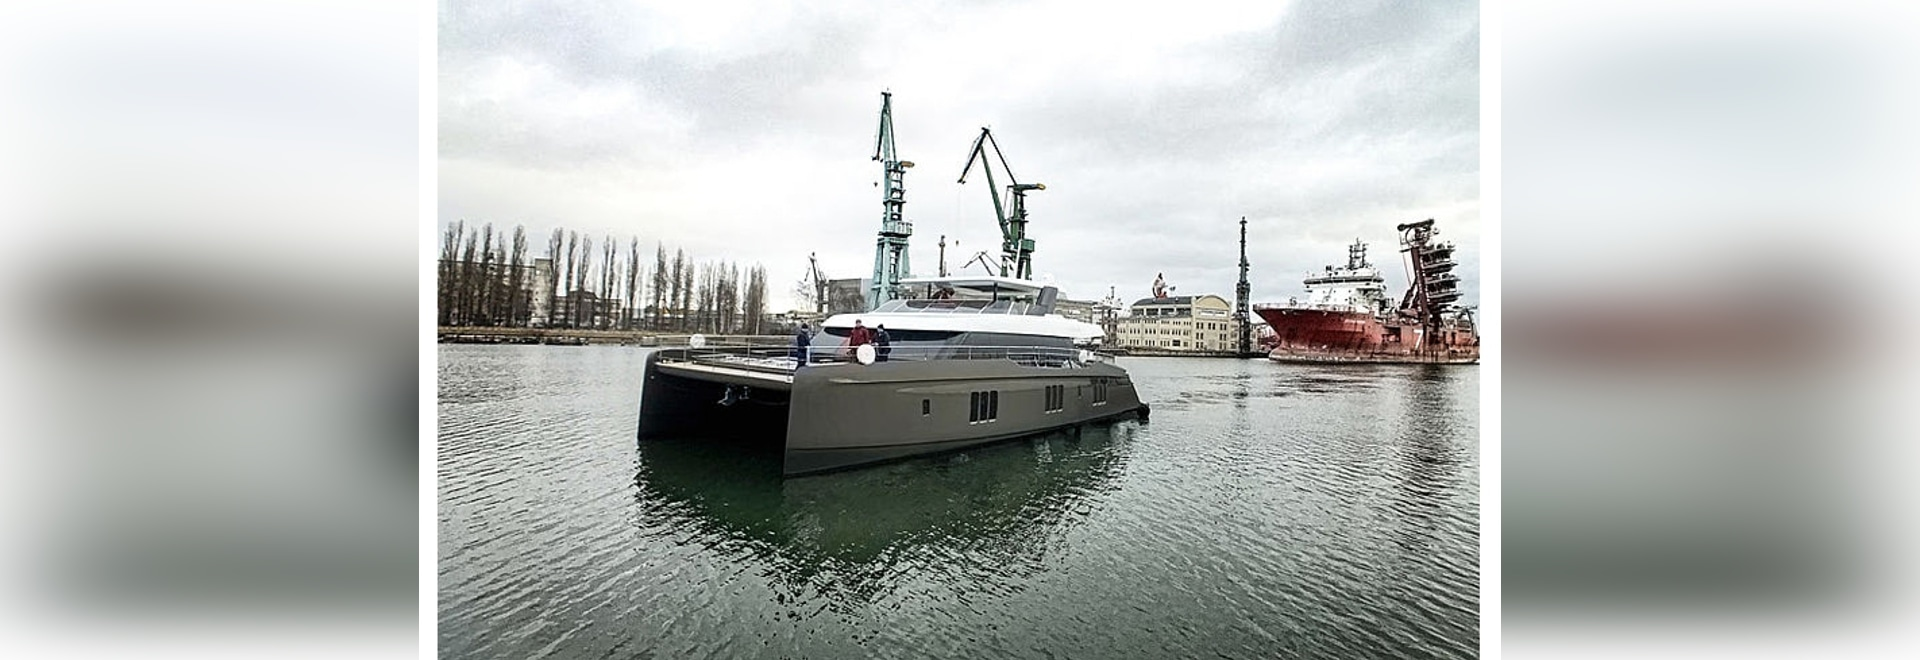 Second Sunreef 80 Power motor yacht Otoctone 80 launched